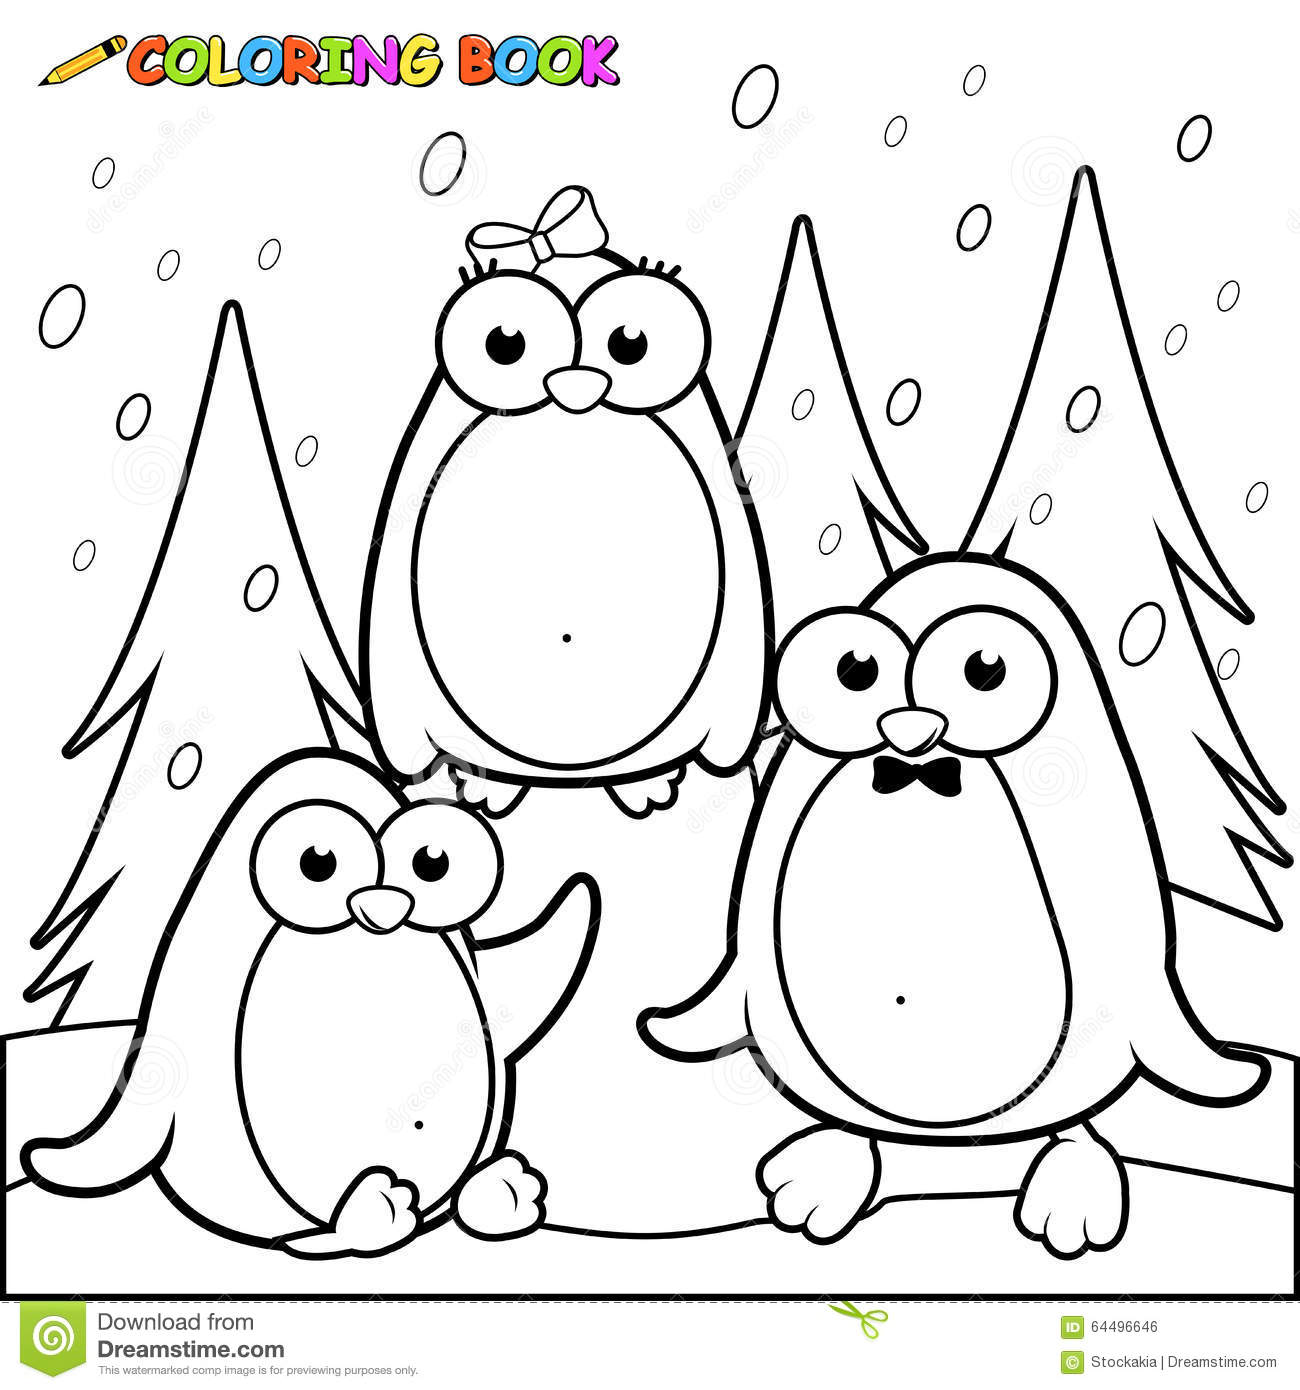 74 Printable Coloring Page For Adults With Landscape